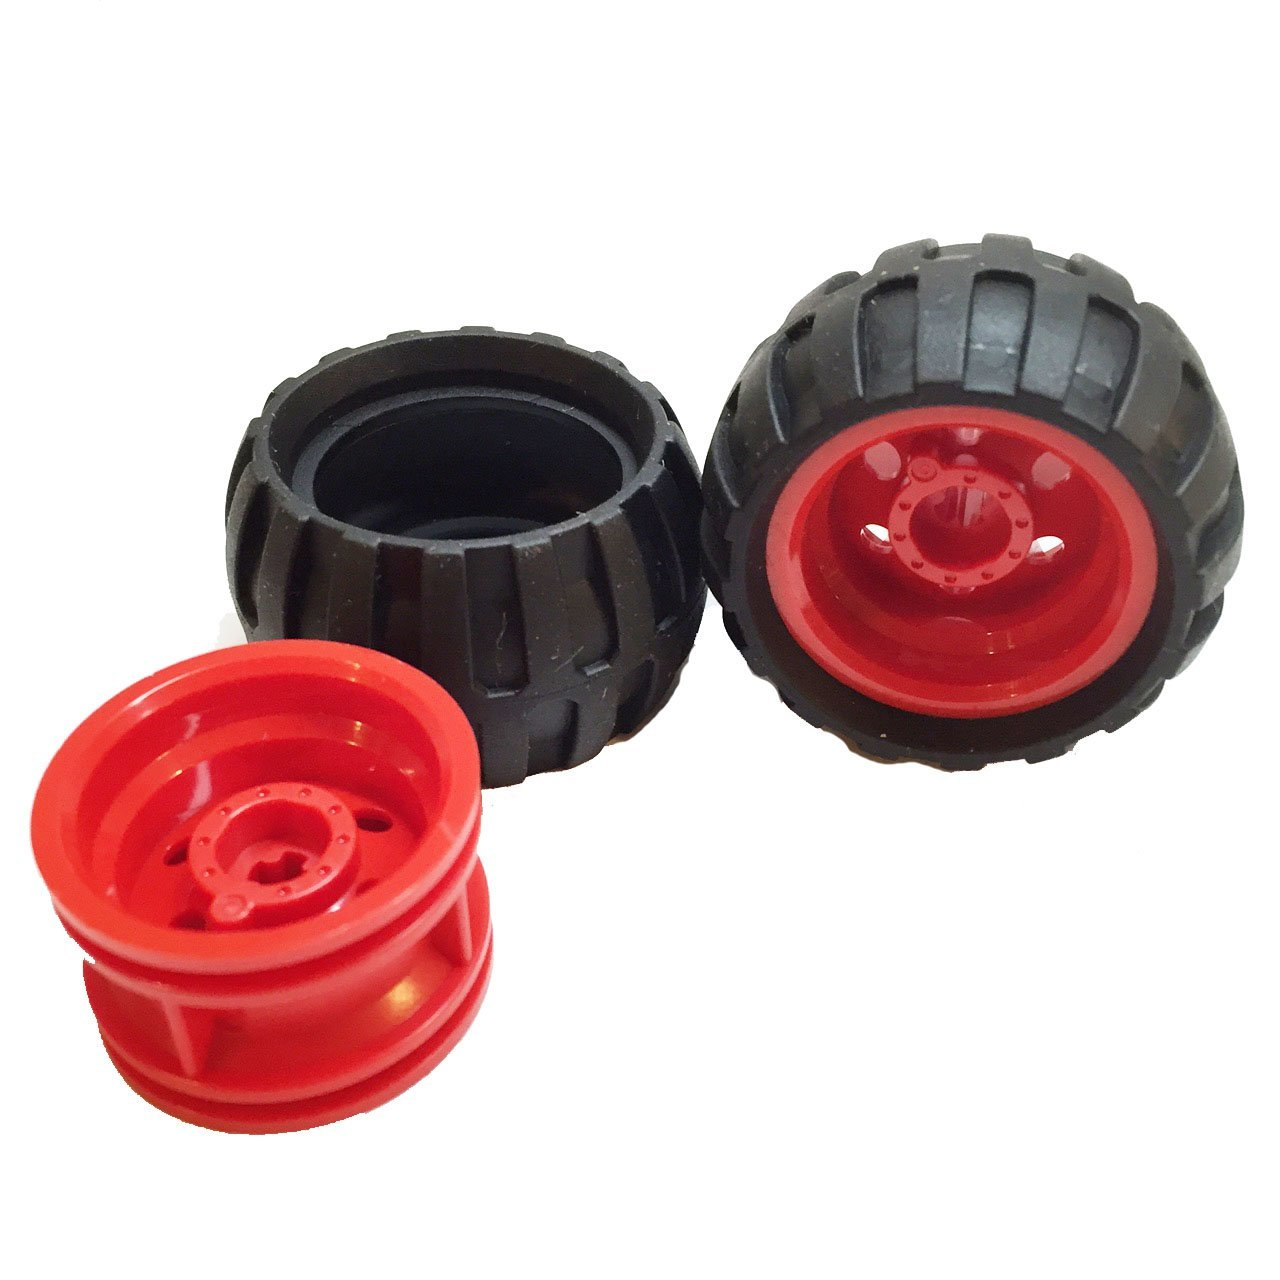 Lego Parts: Off-Road Wheels Tire and Rim Bundle (2) Black 43.2mm x 26mm Balloon Tires (2) Red 30.4mm x 20mm Wheel Rims